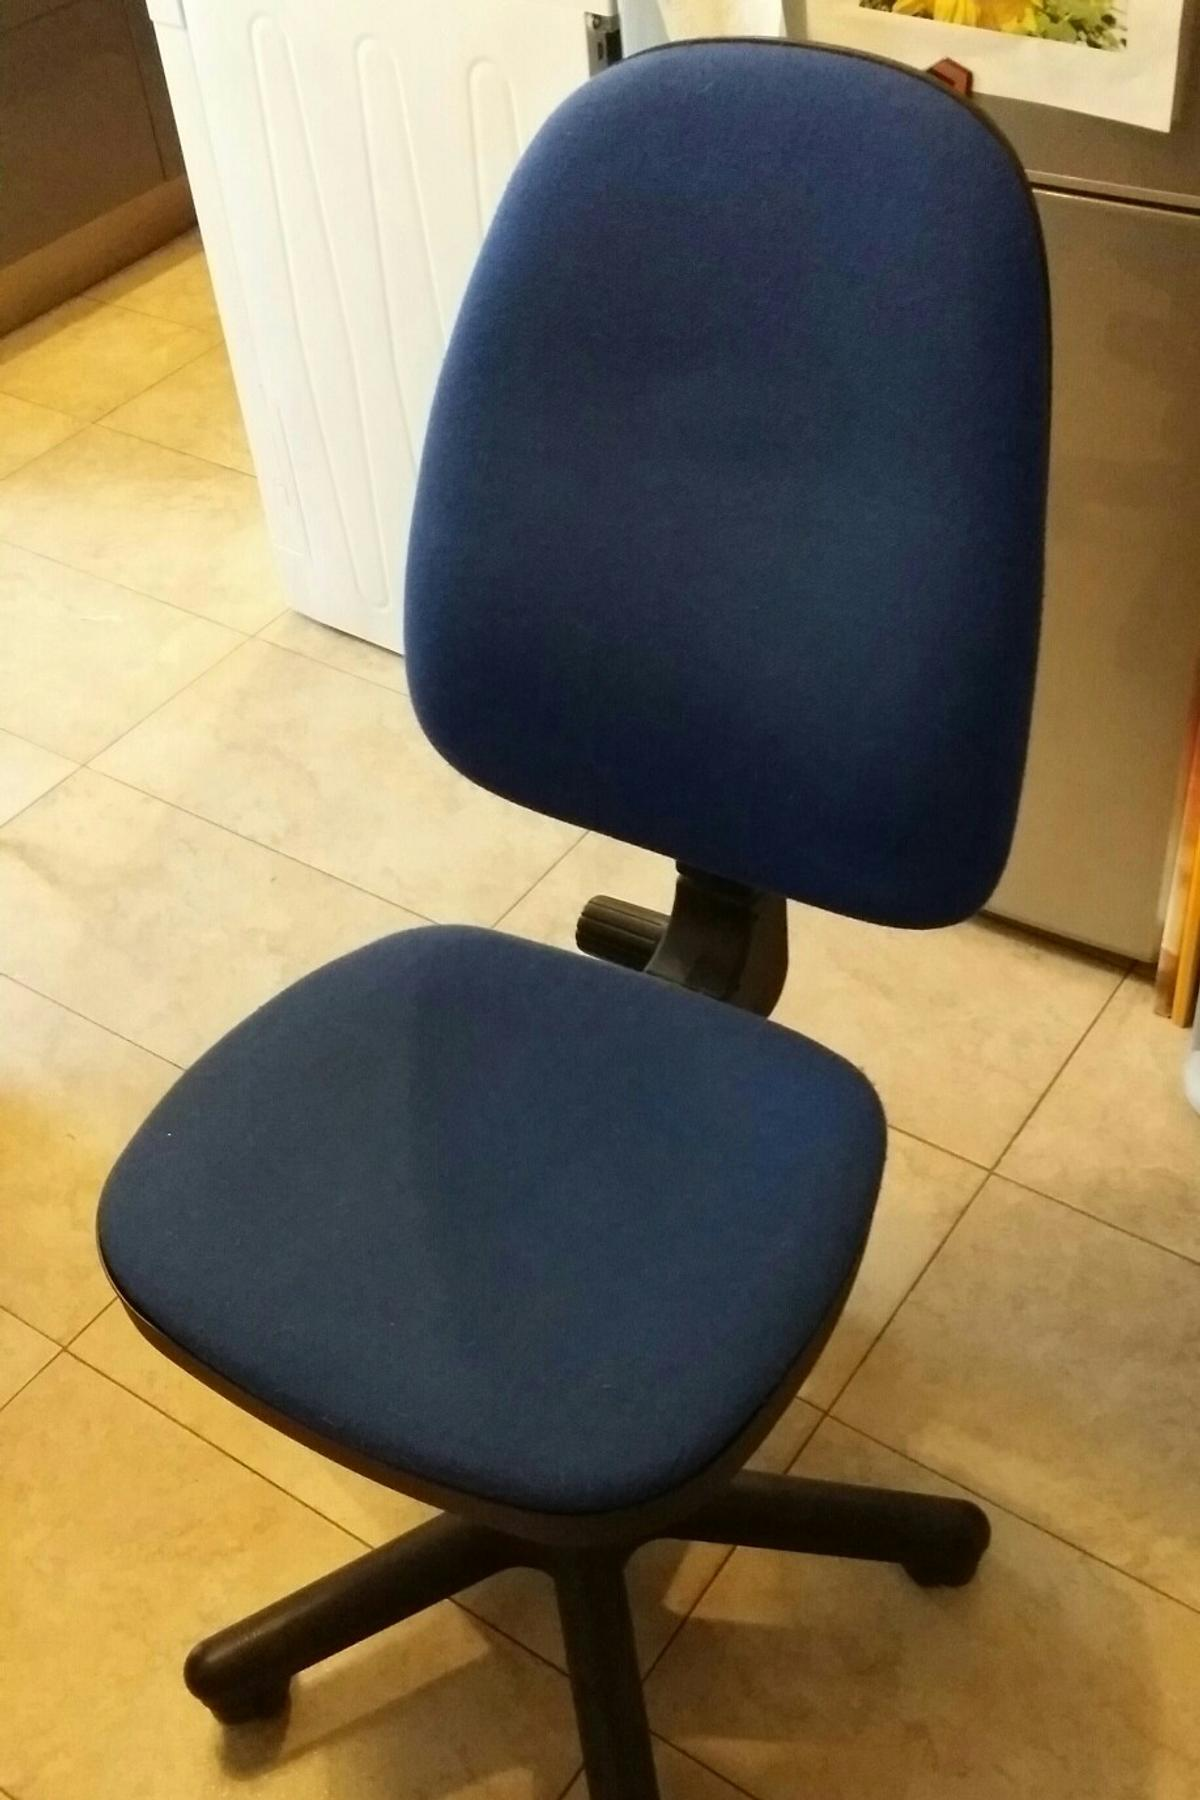 Sedia con rotelle in 20019 Municipio 7 for €18.00 for sale - Shpock